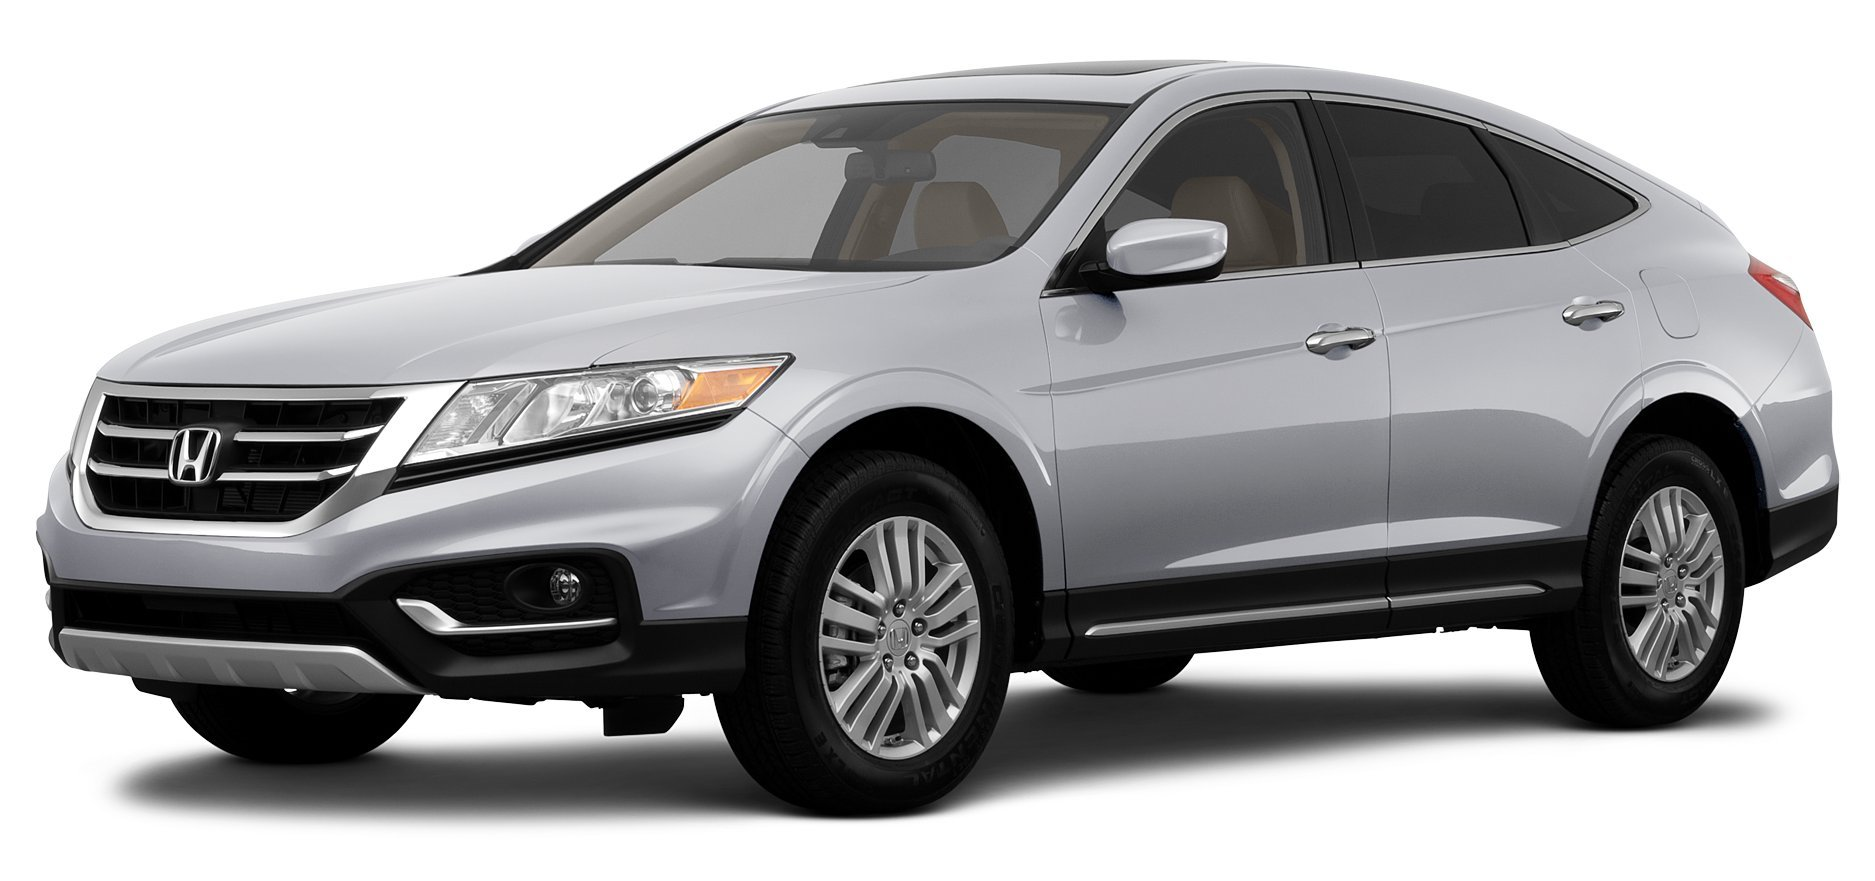 Honda Crosstour: photos, specifications, reviews of owners 7